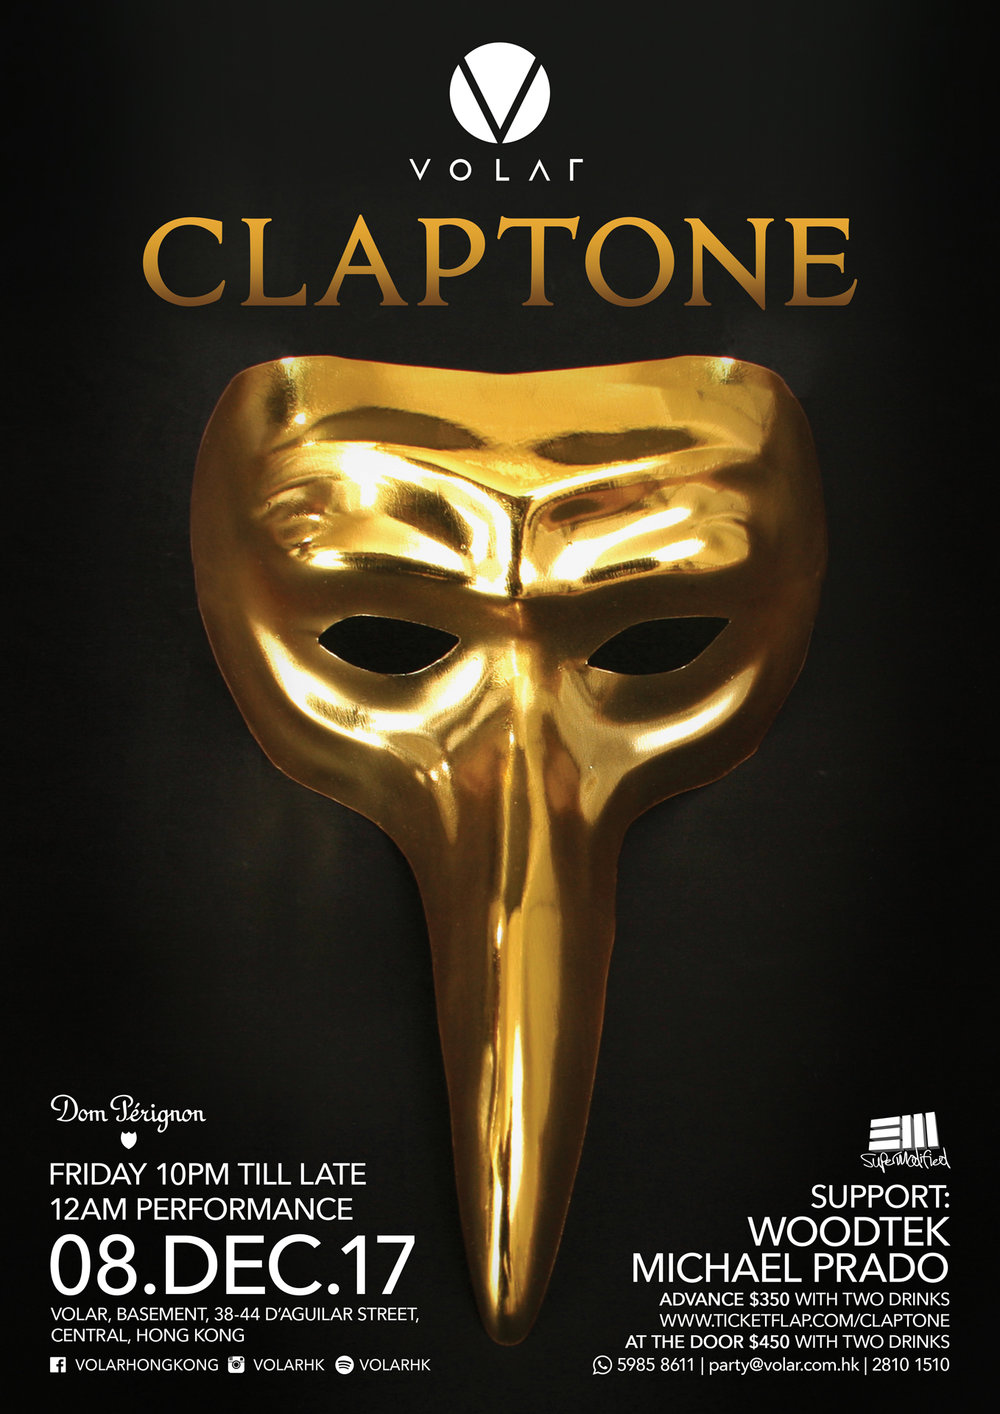 Volar_A2_Claptone_Template_Poster_view_only.jpg